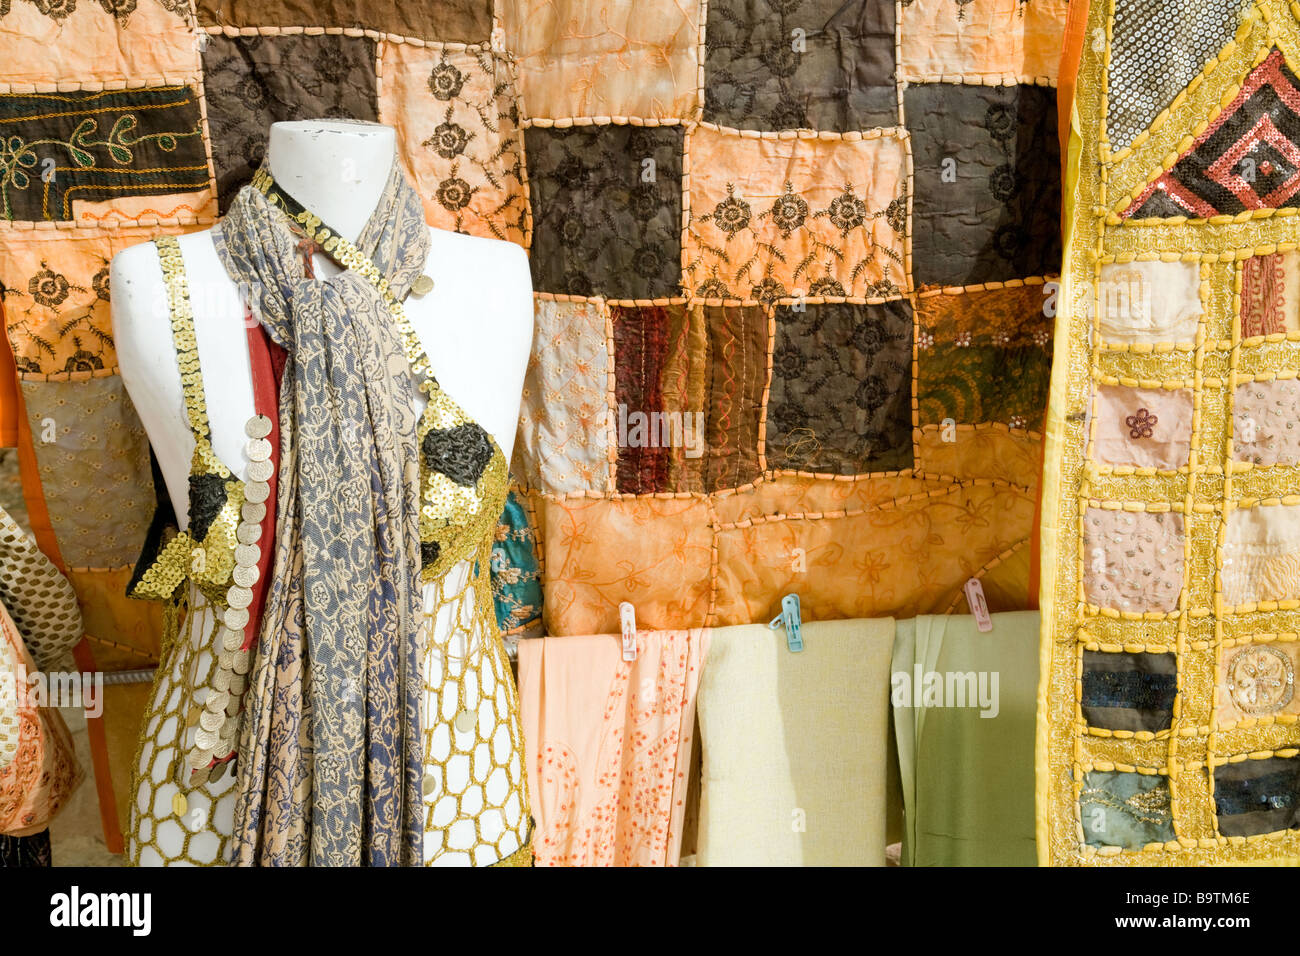 Clothes and material for sale, Jordan - Stock Image